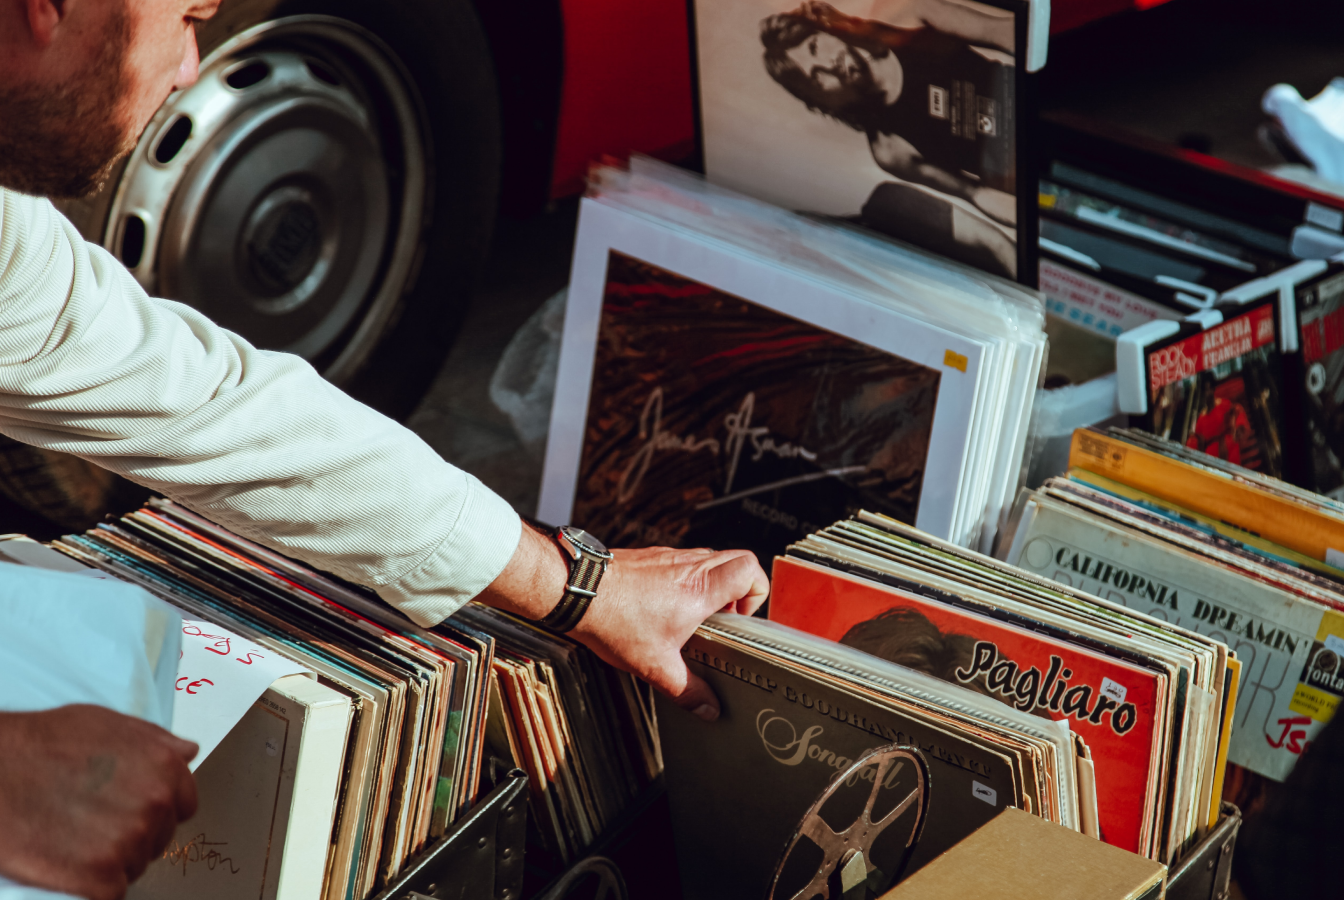 Man reaching into bin of old LP records